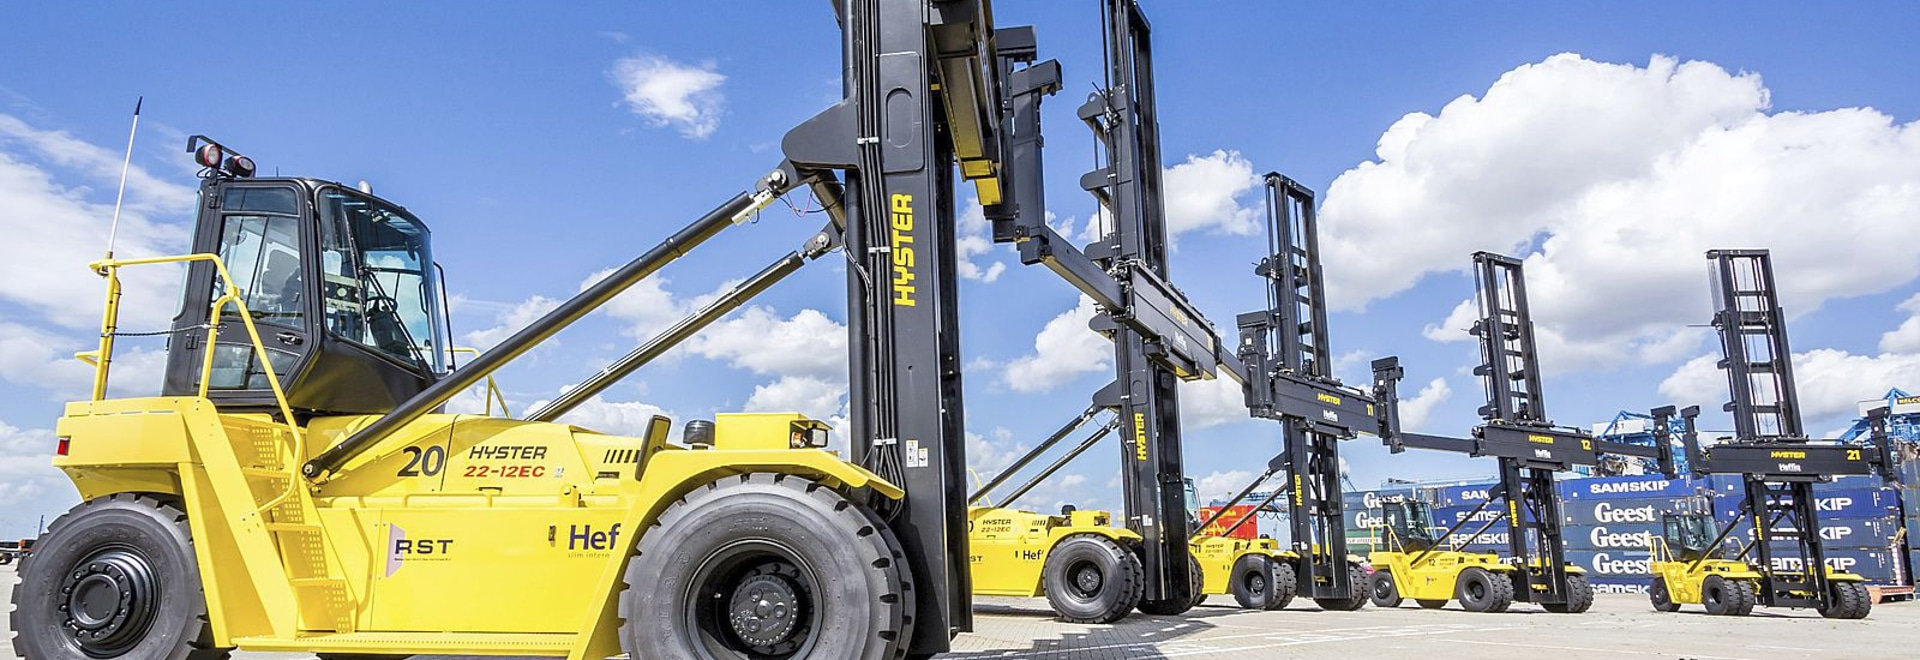 5 New Hyster empty container handlers for RST